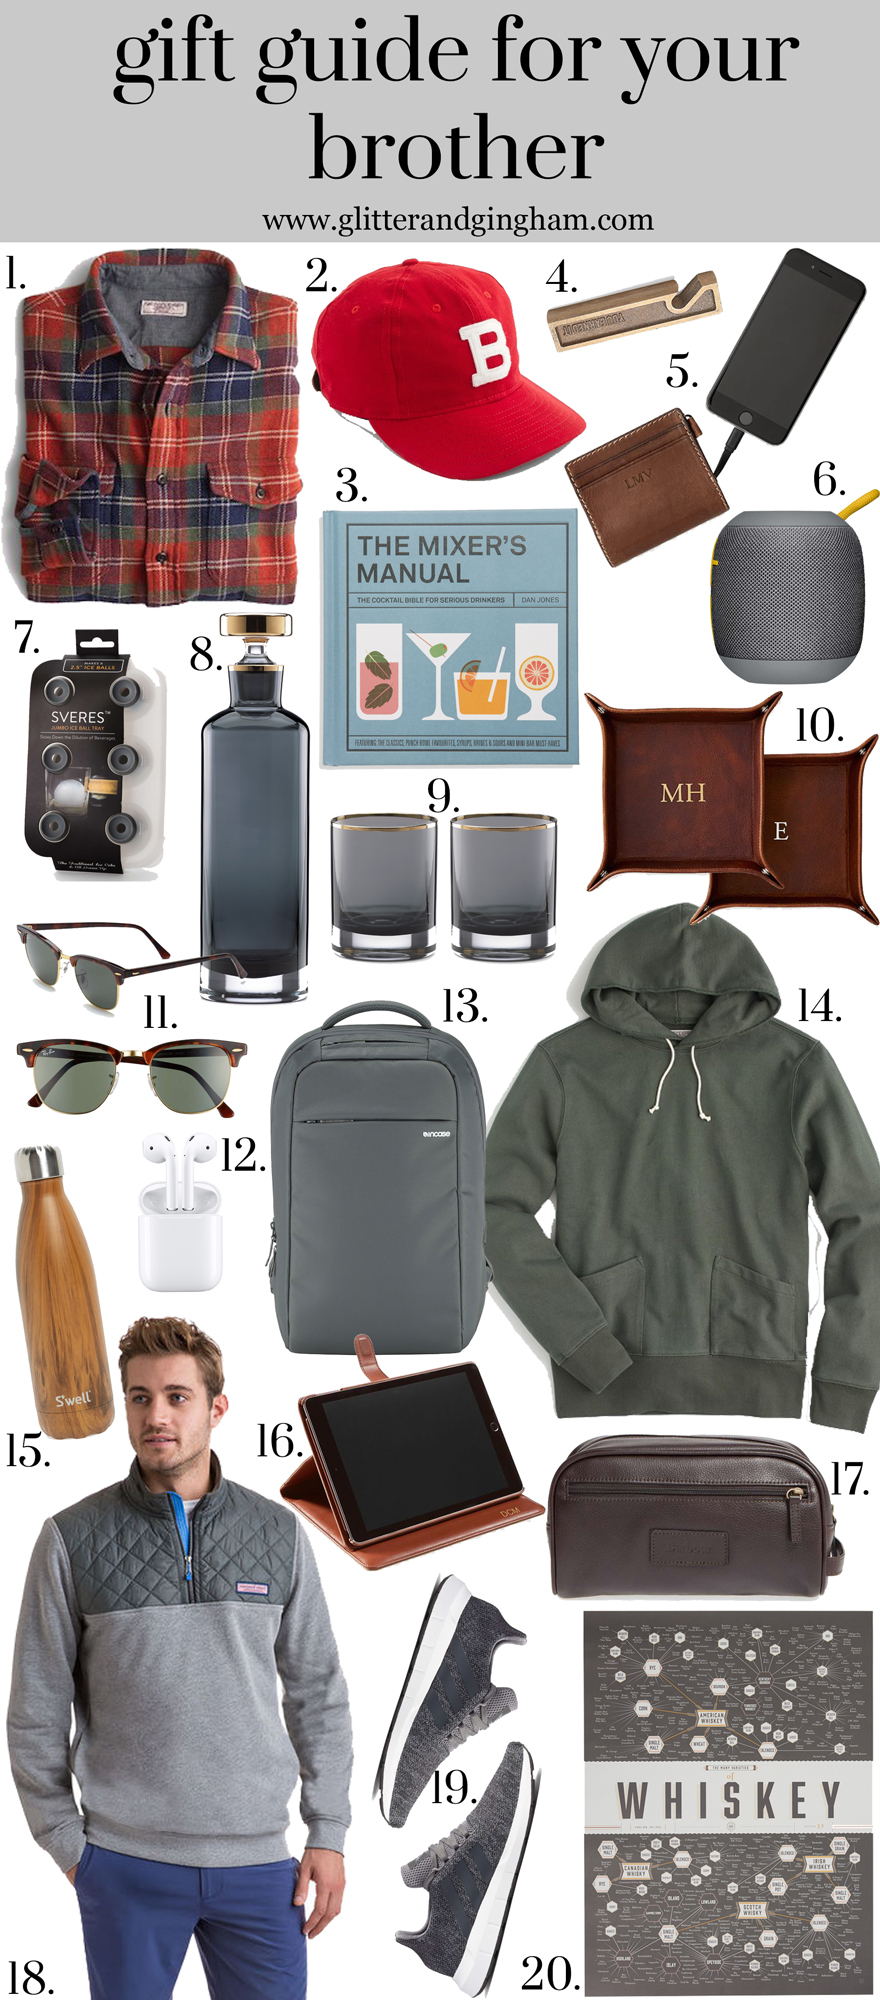 Gift Guide for your Brother / Holiday Gift Ideas for your brother, brother in law